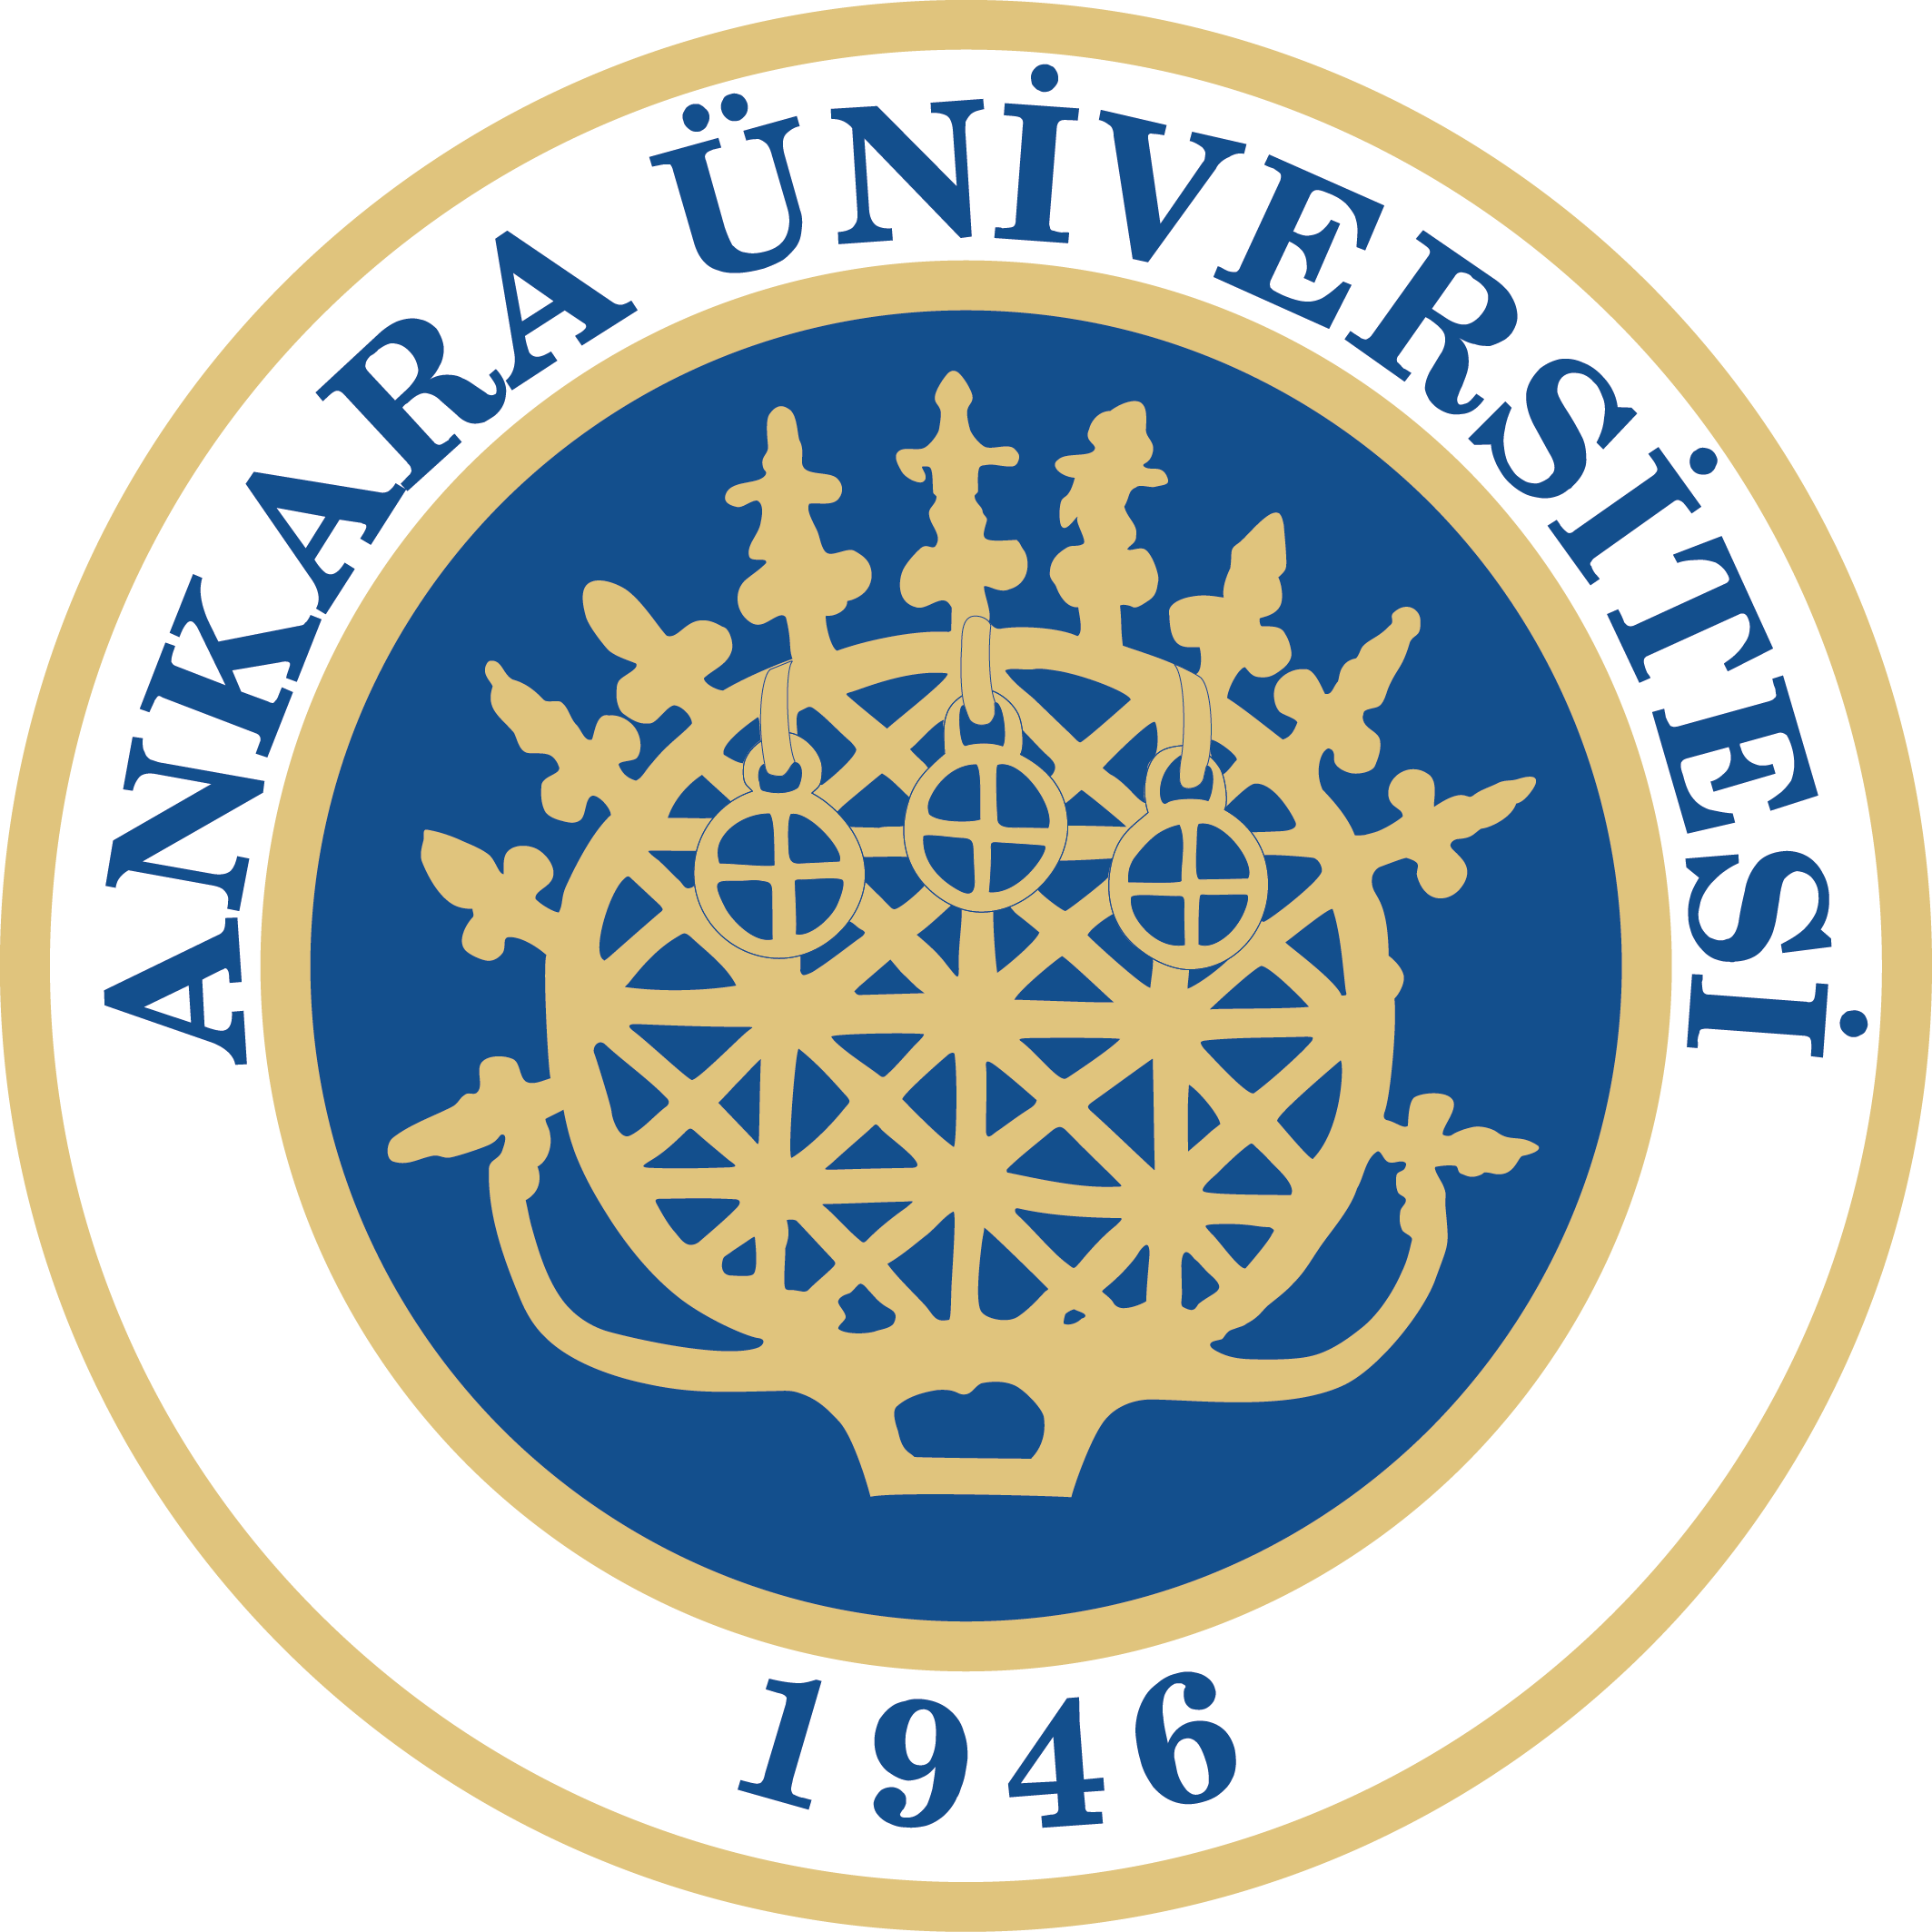 ankara universitesi logo